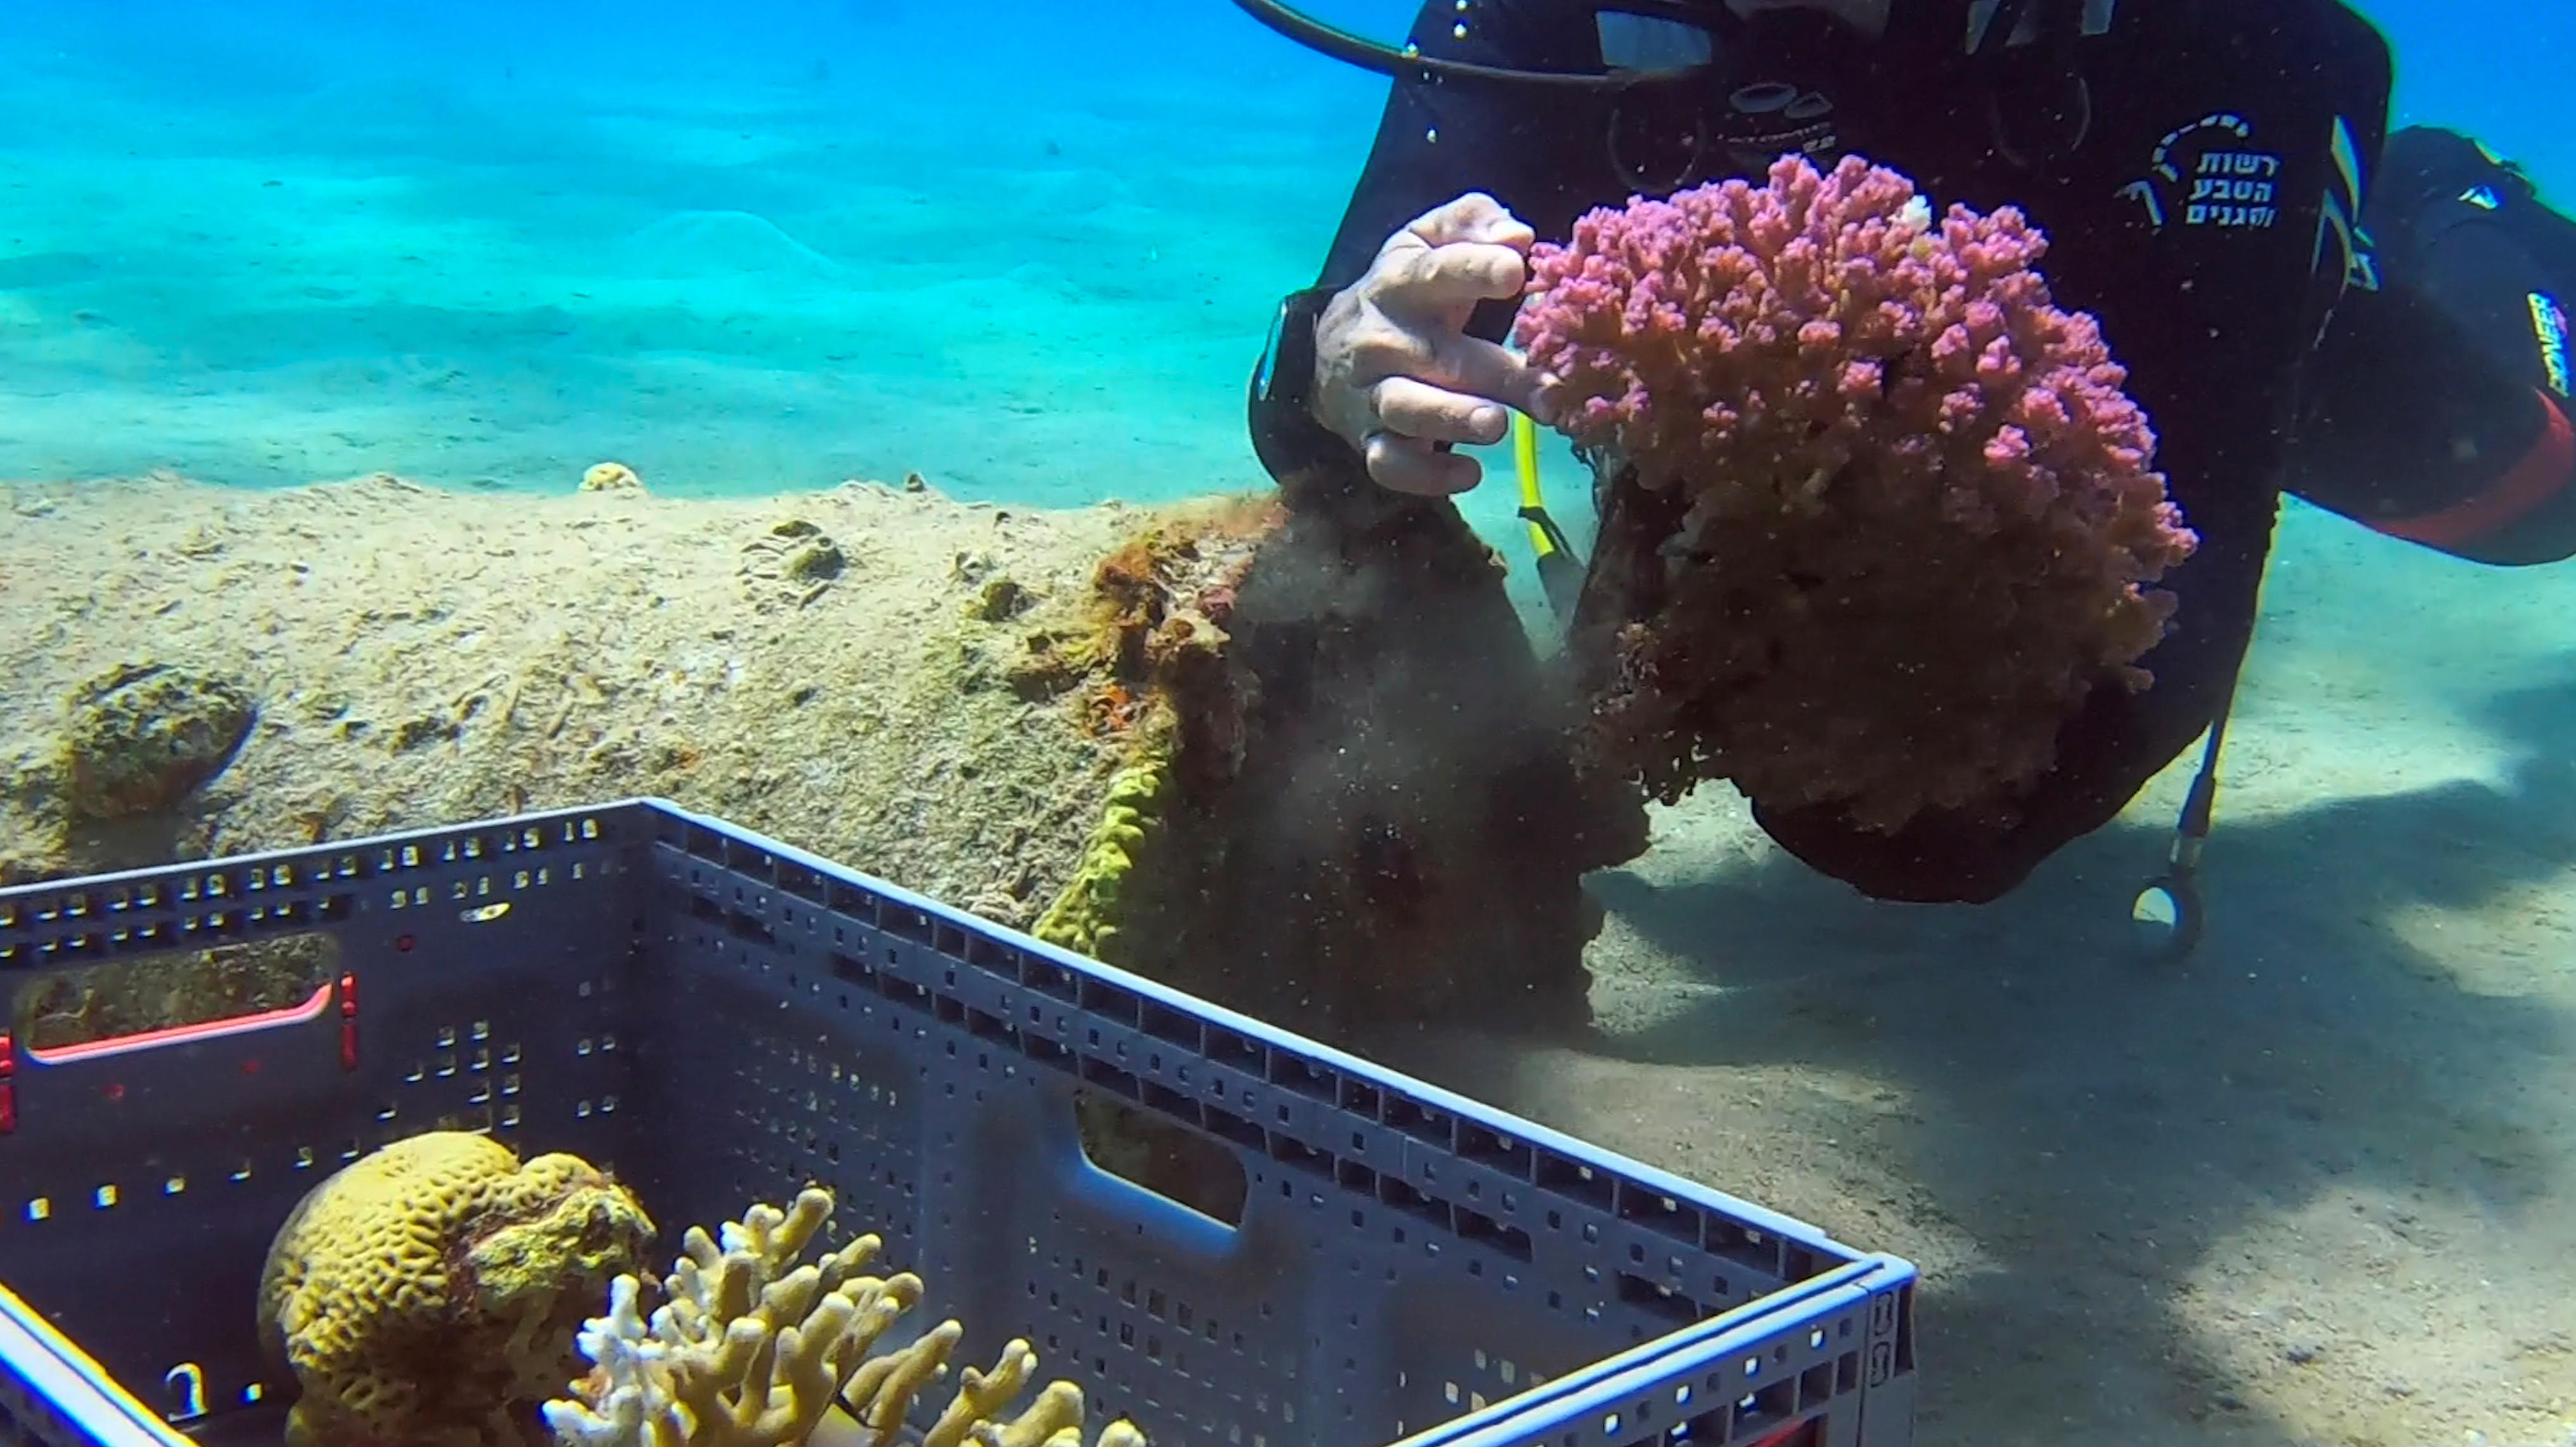 Removing the coral reef is a slow and careful process